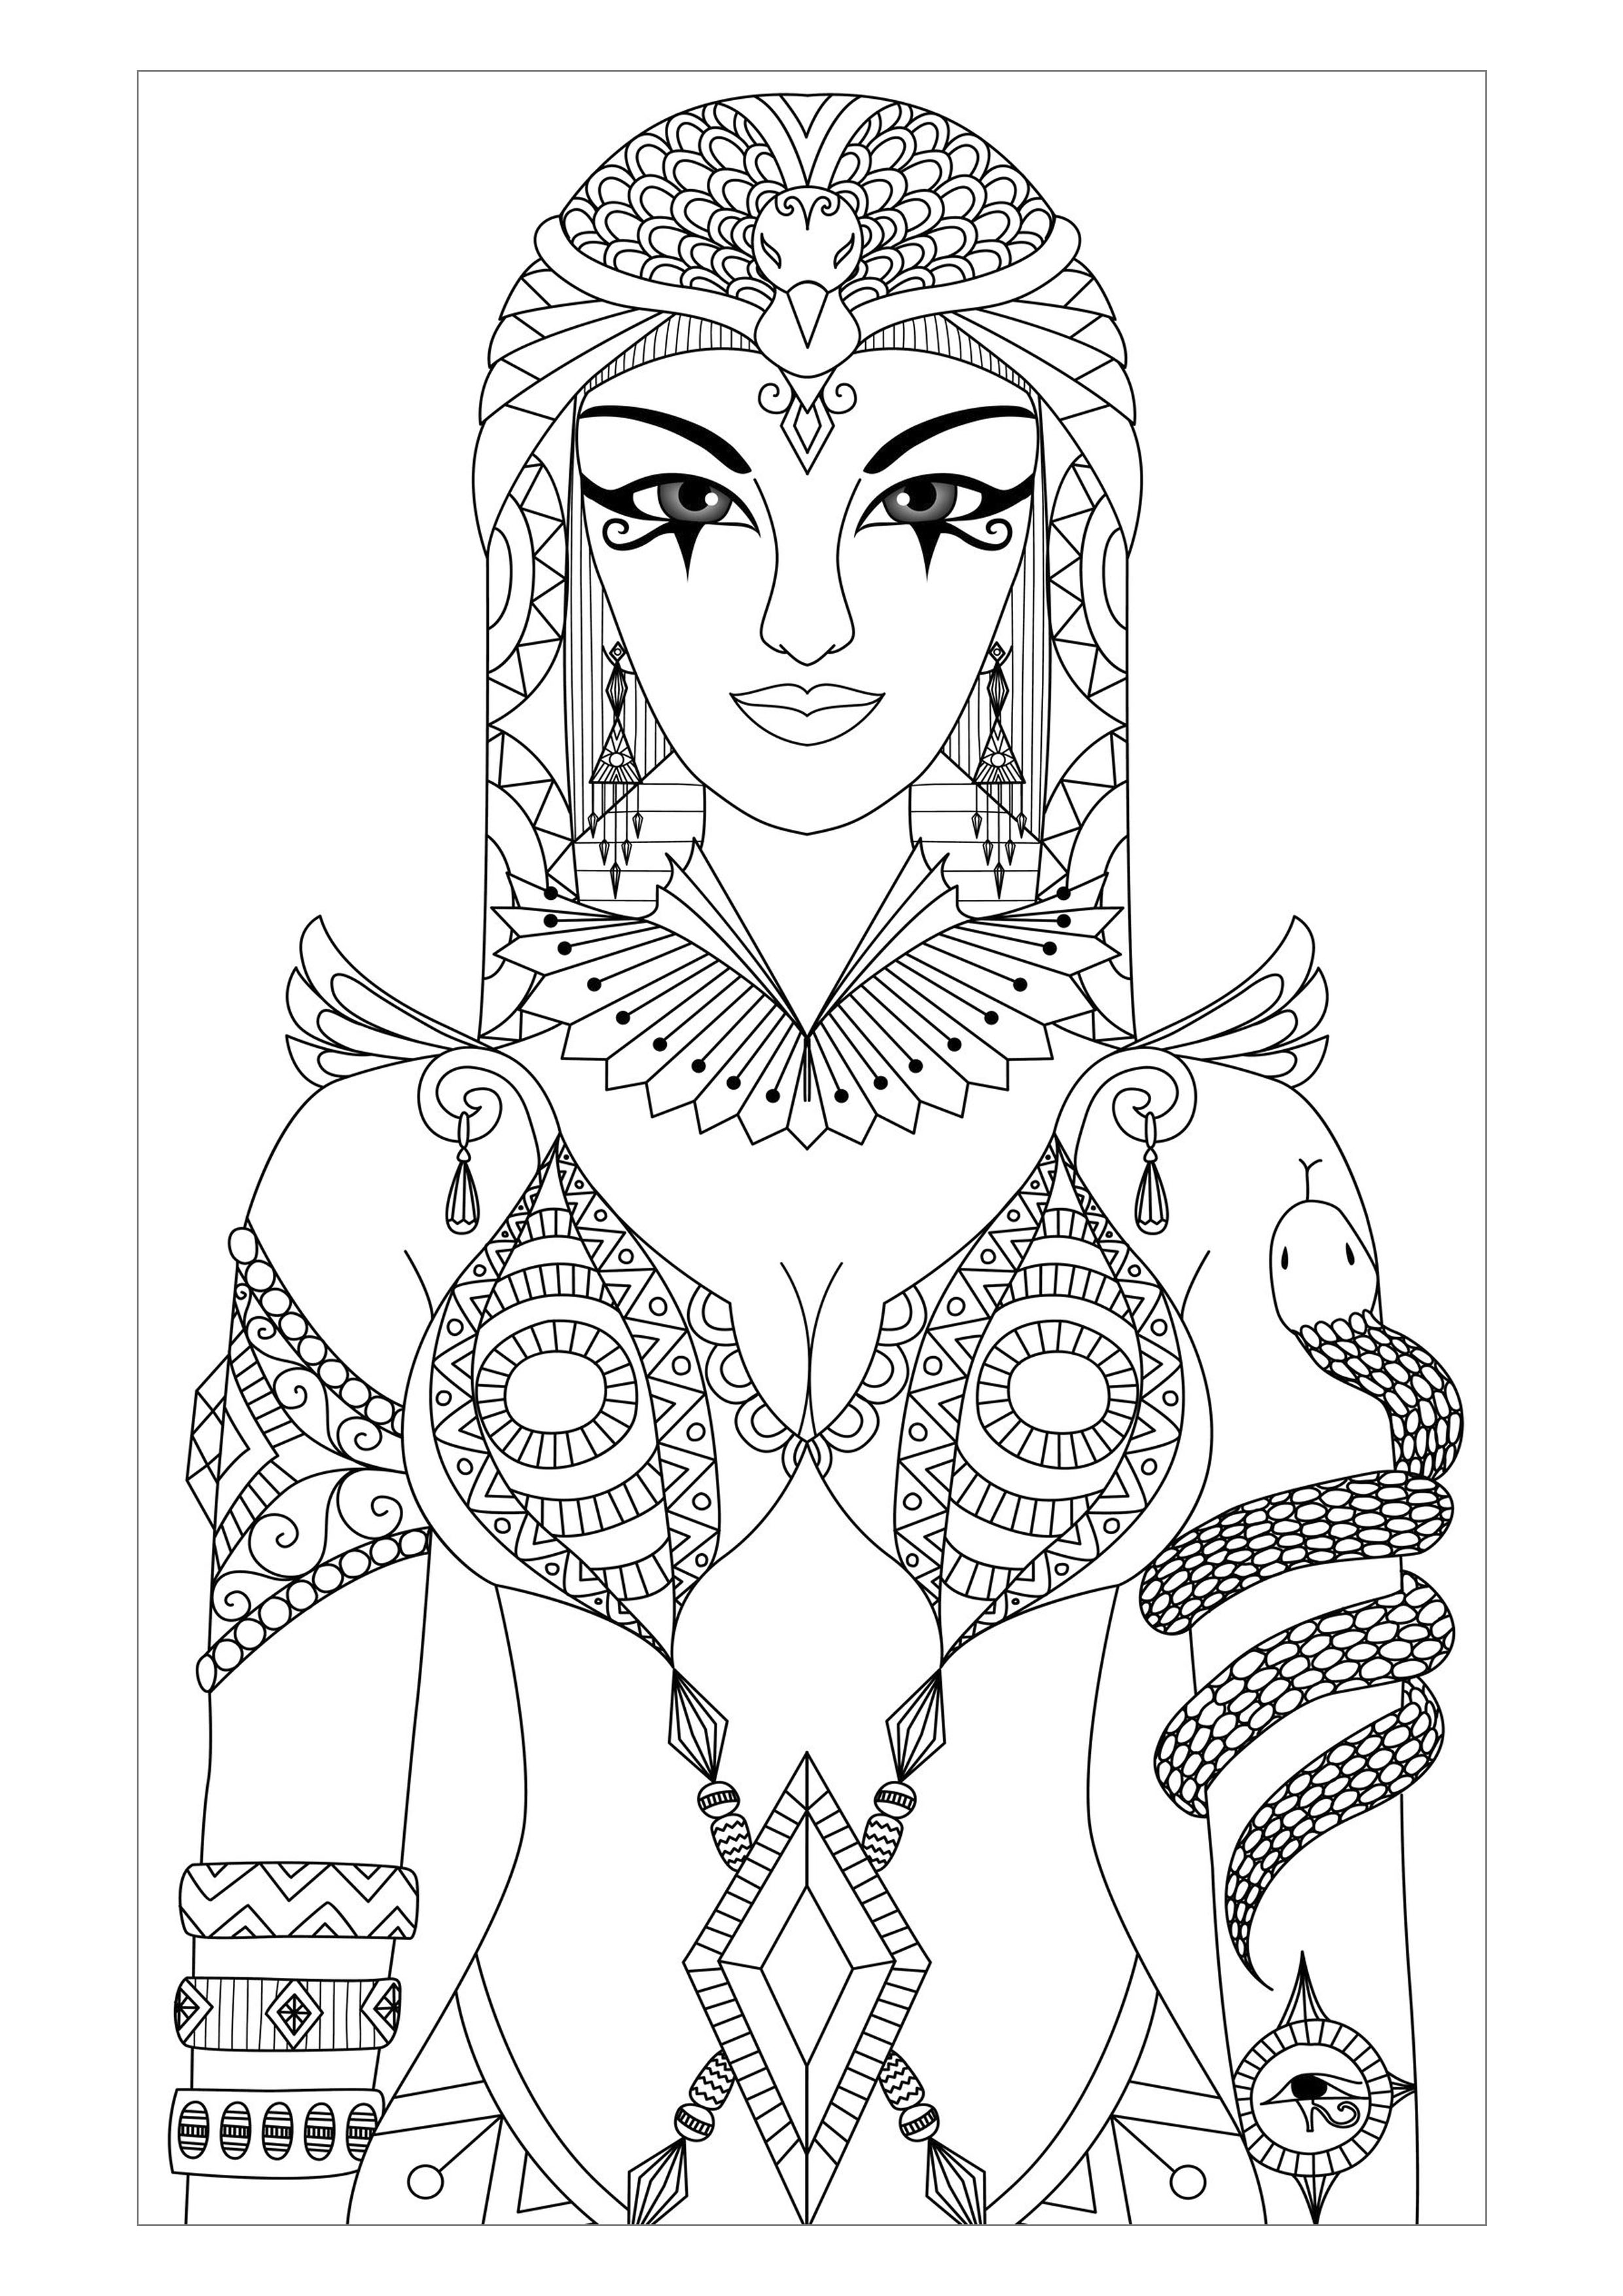 2 Sarcophagus Drawing Egyptian For Free Download On Ayoqq - Free Printable Sarcophagus